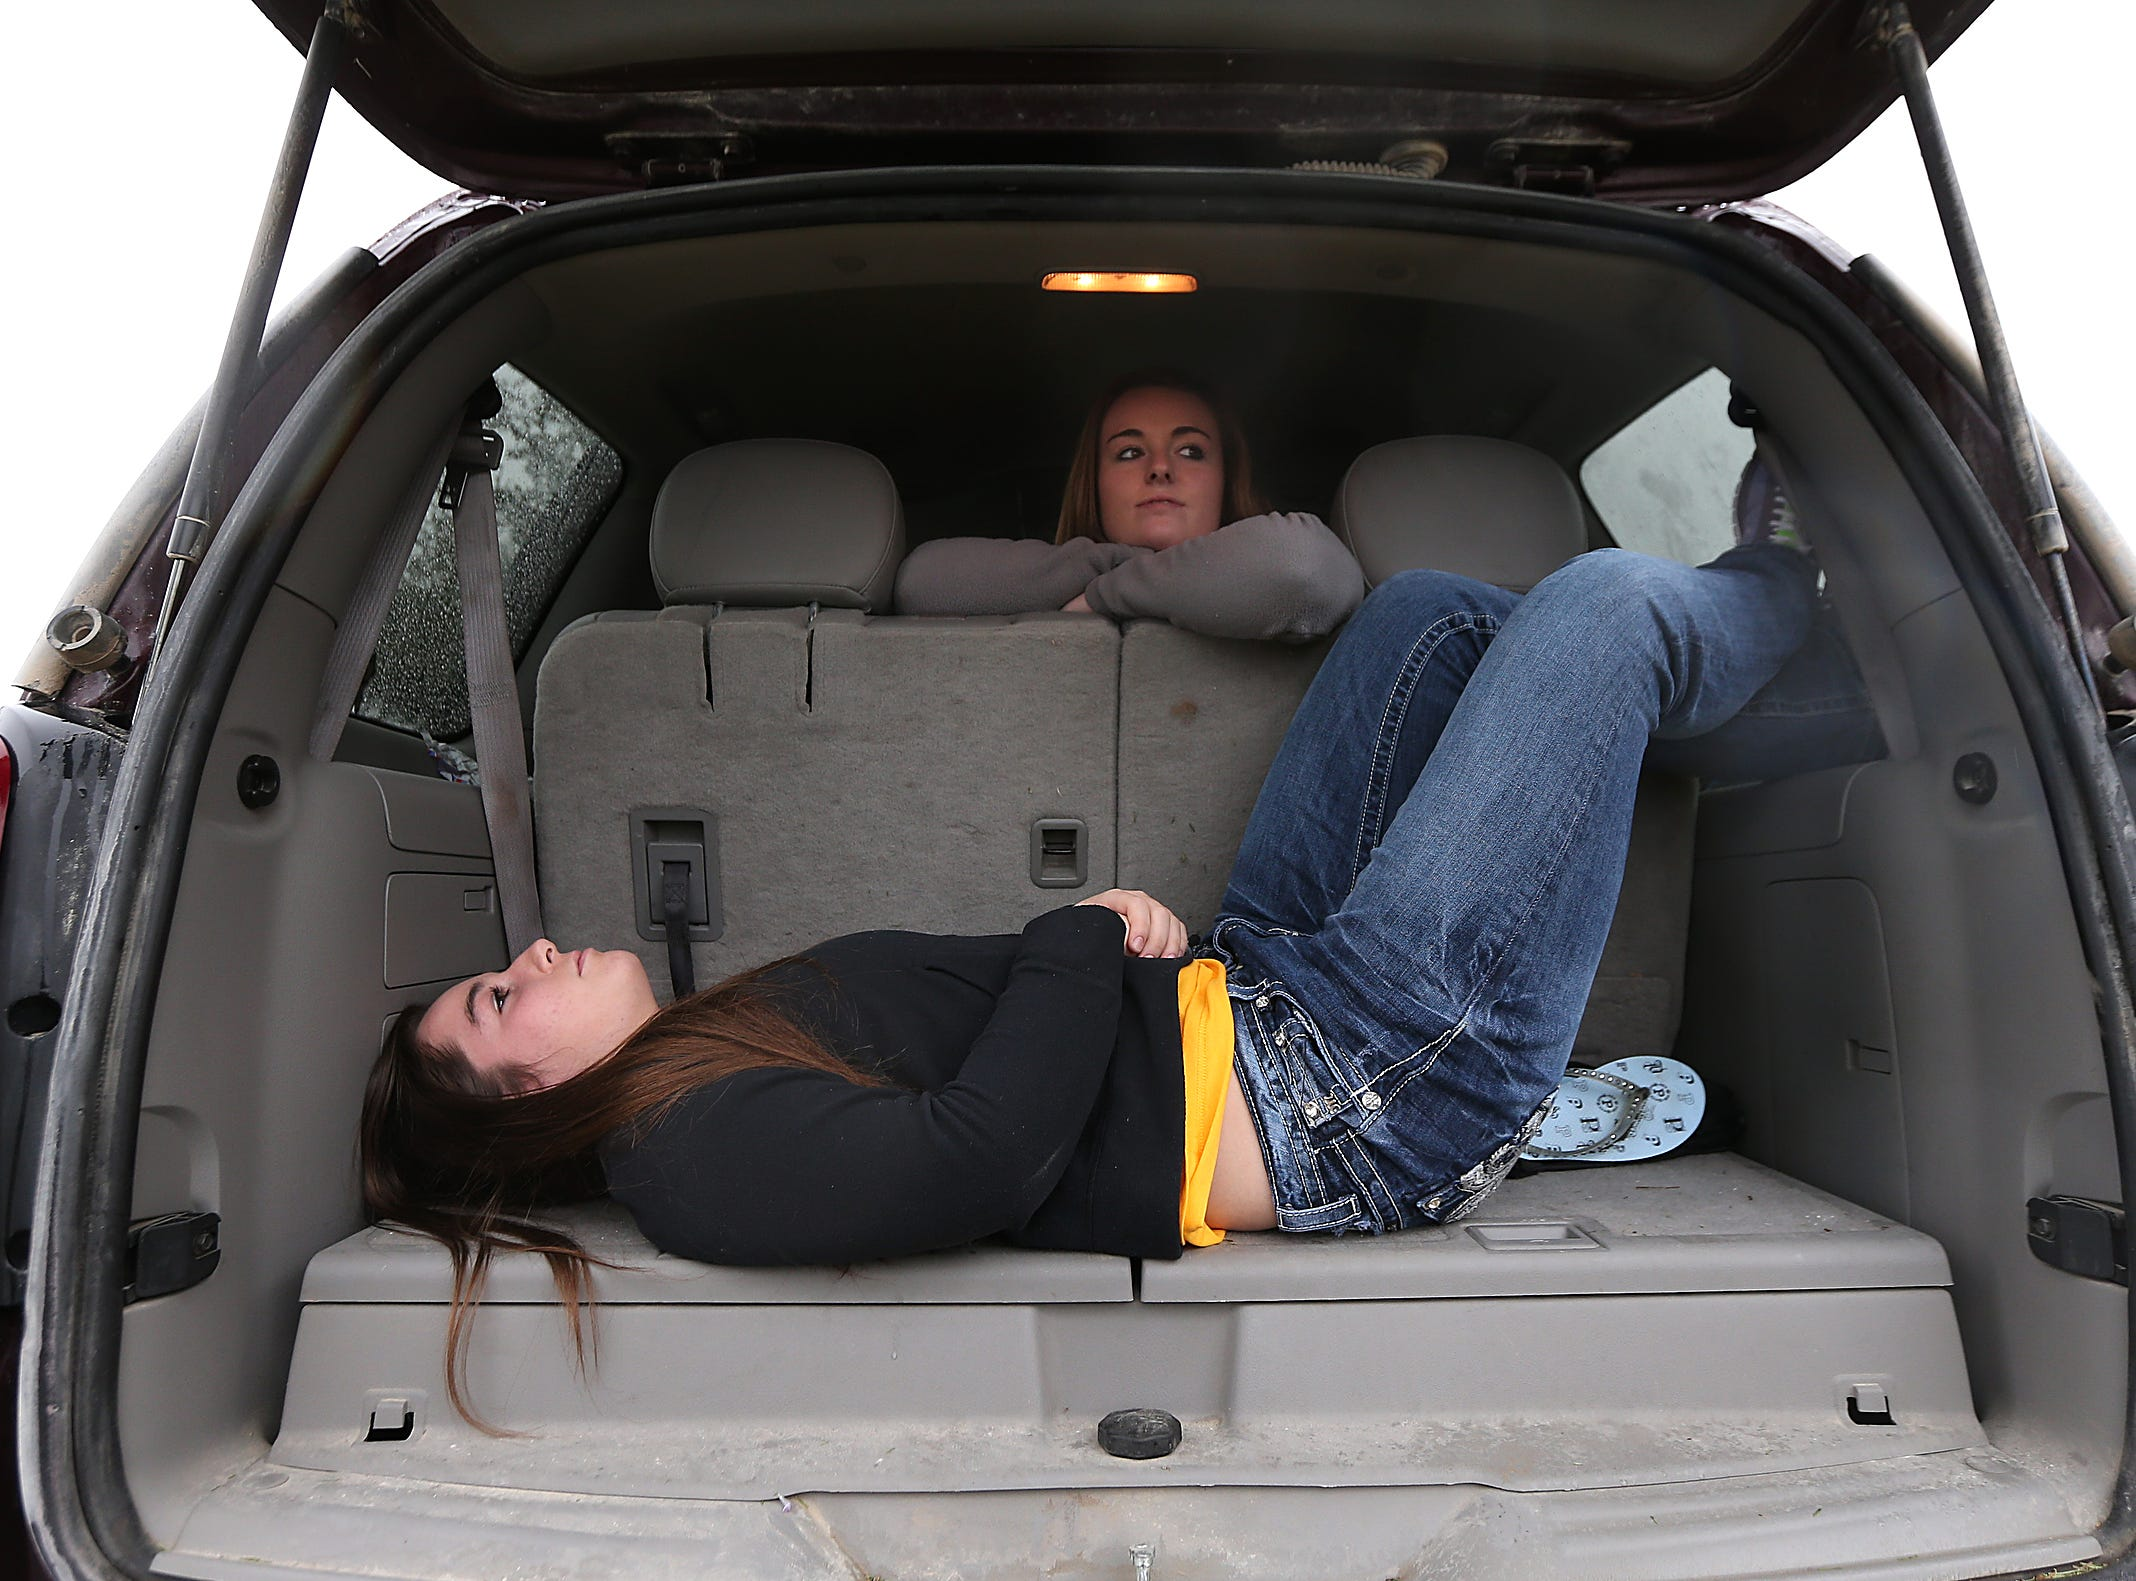 Morgan Nichols, 15, of West Liberty lays down in the back of a van as her sister, Merideth, 18, relaxes in the back prior to the Outback Bowl on Wednesday, Jan. 1, 2014, in Tampa, Florida. (Bryon Houlgrave/The Register)